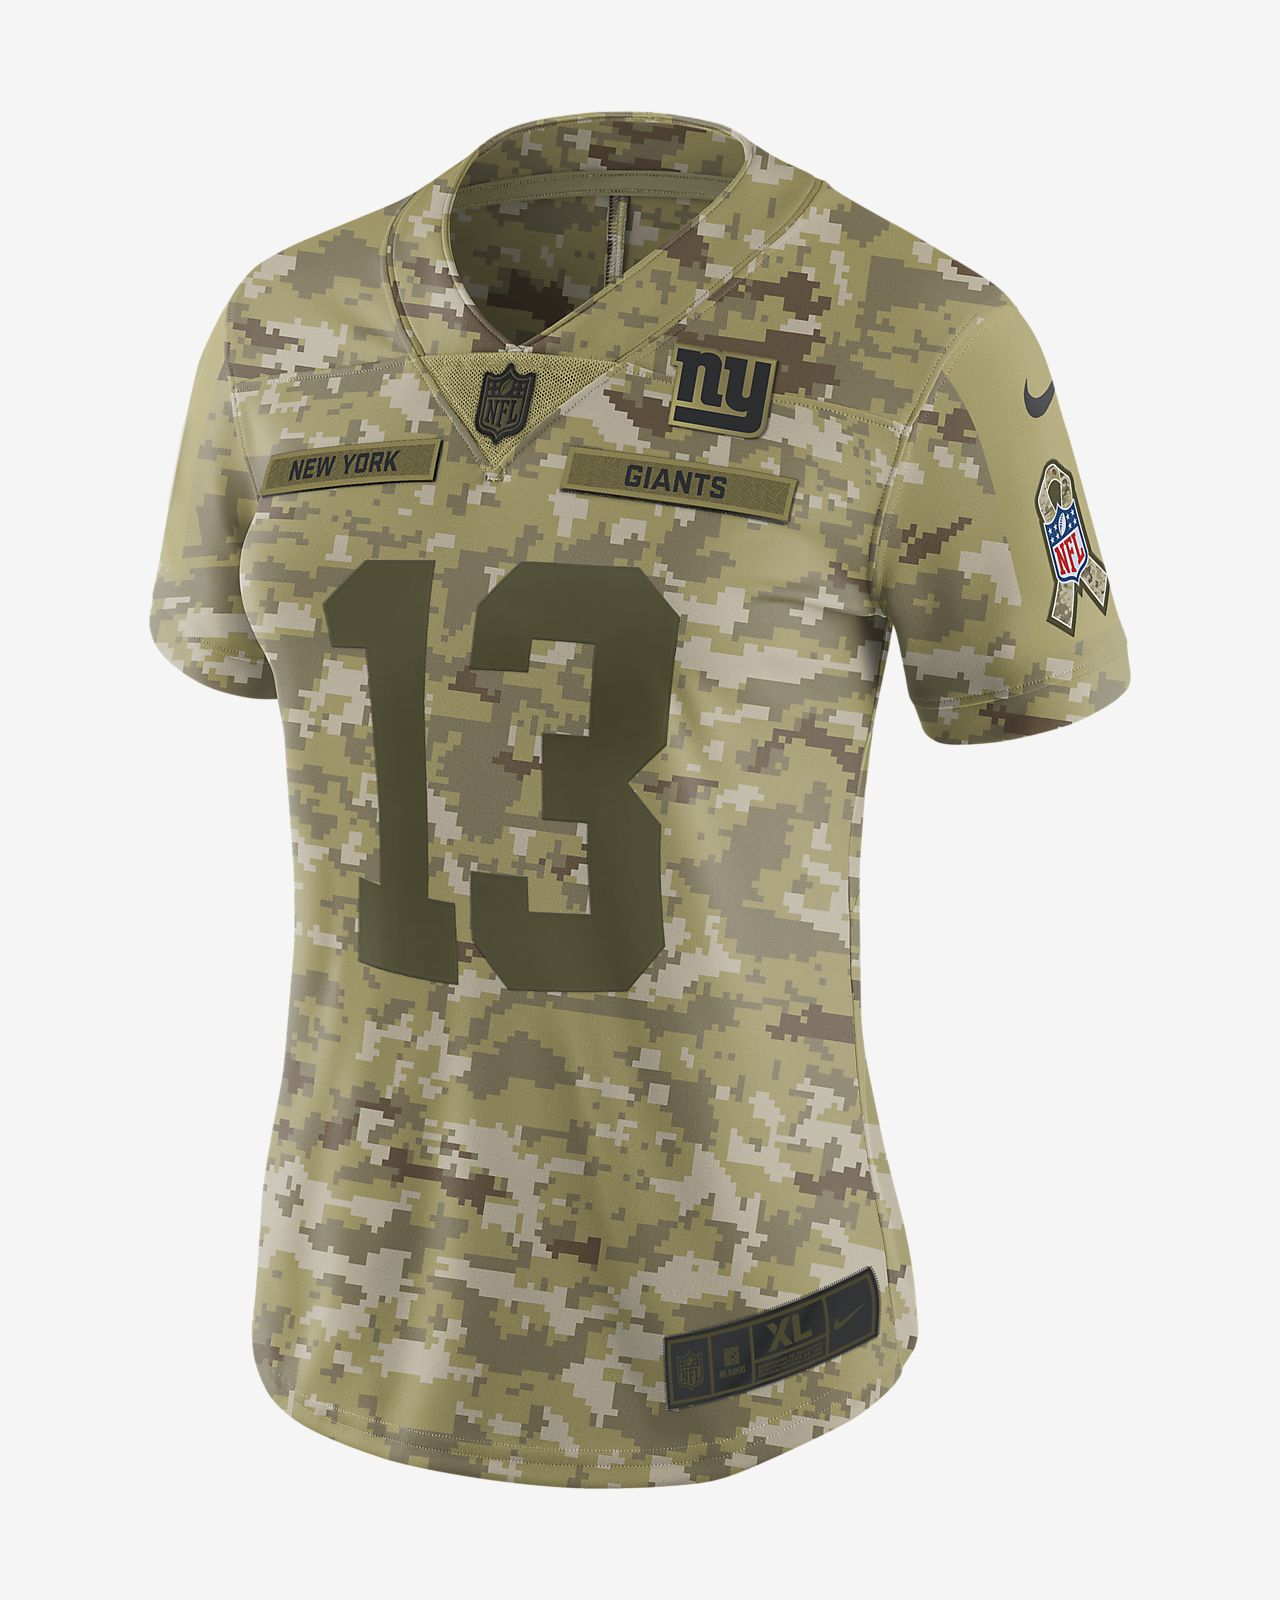 6c15649a0 NFL New York Giants Limited Jersey (Odell Beckham Jr.) Women s ...